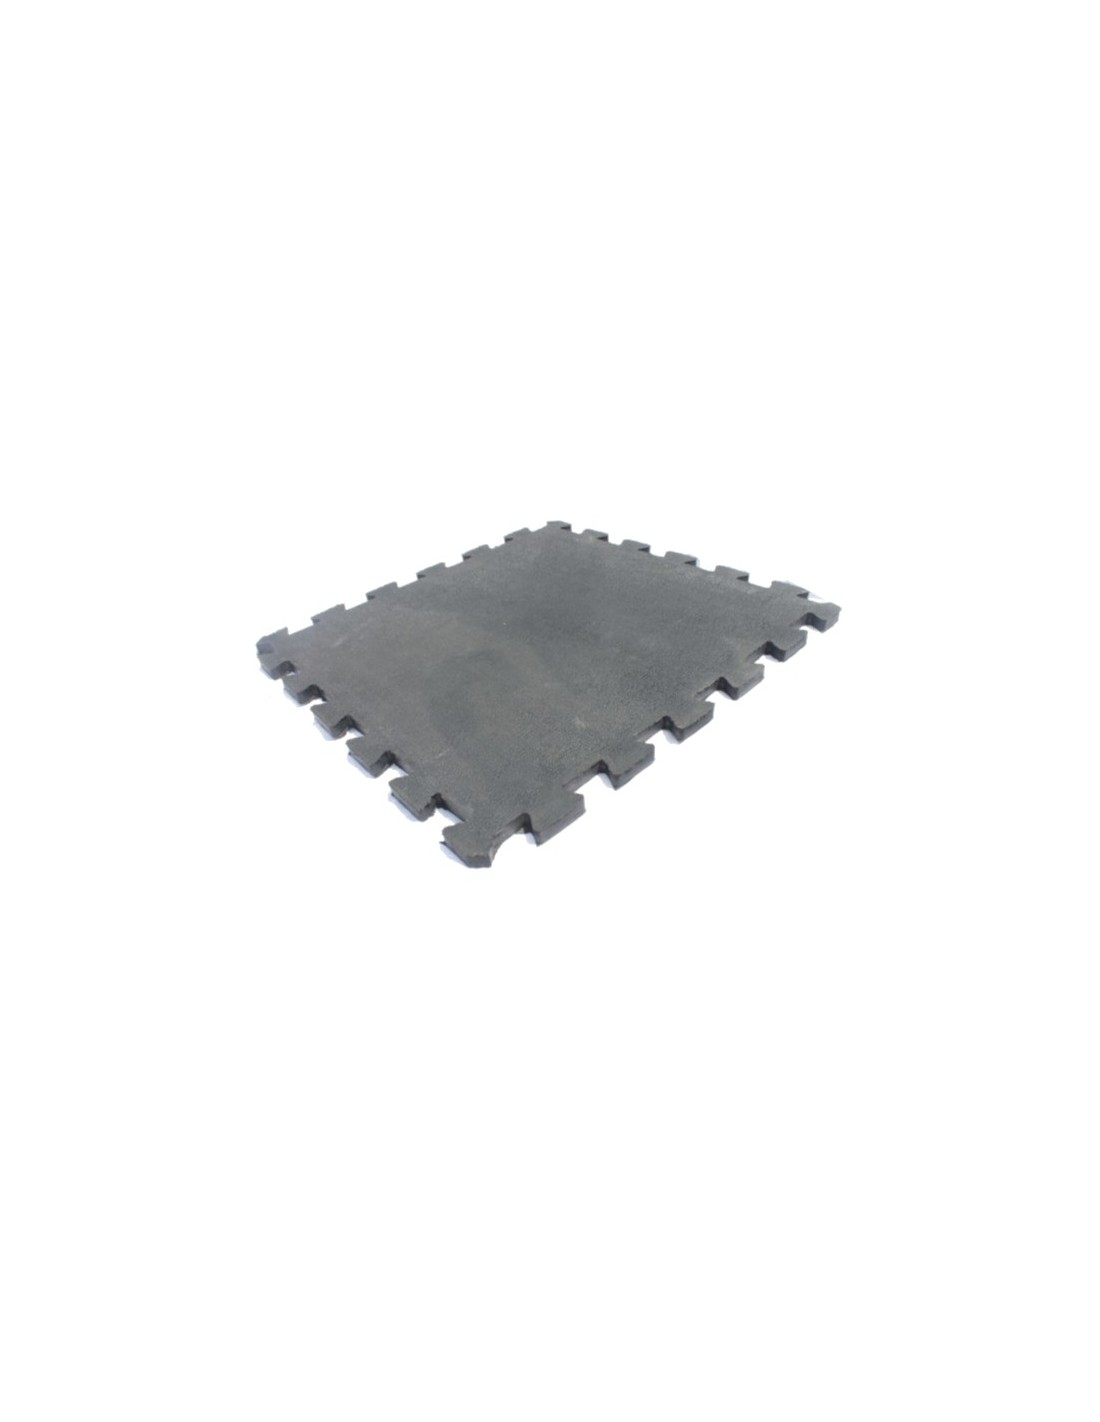 Interlocking Rubber Floor Tile 17mm Thick